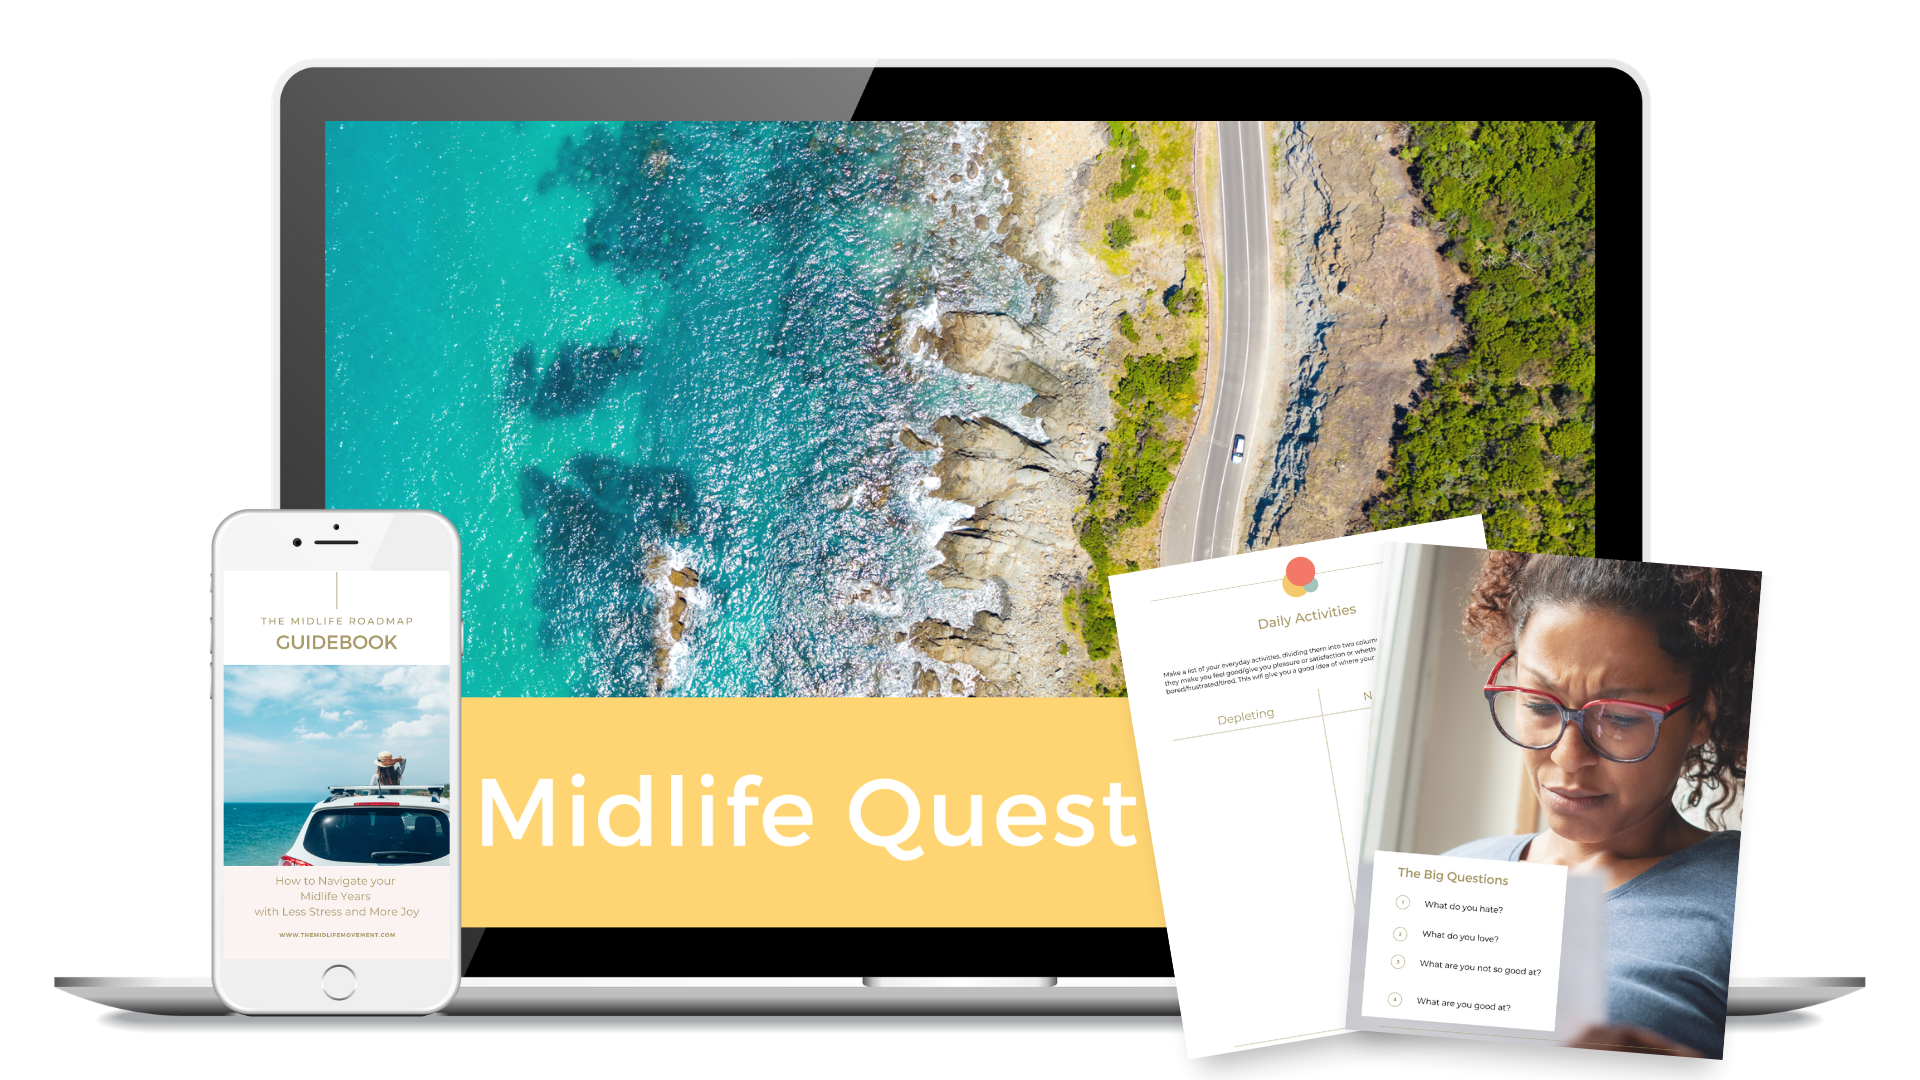 The Midlife Quests course